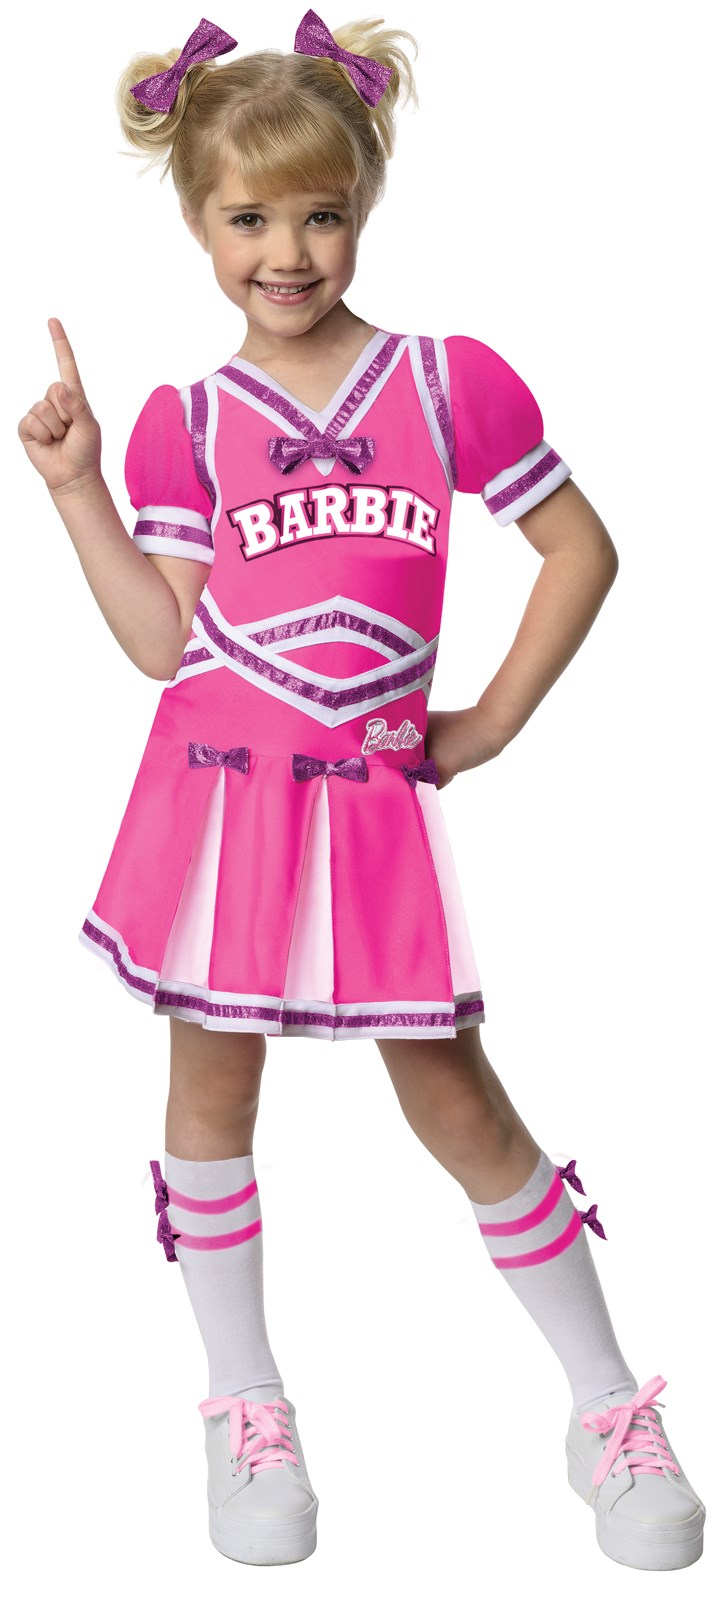 Barbie Cheerleader Toddler / Child Costume Toddler (2T-4T)